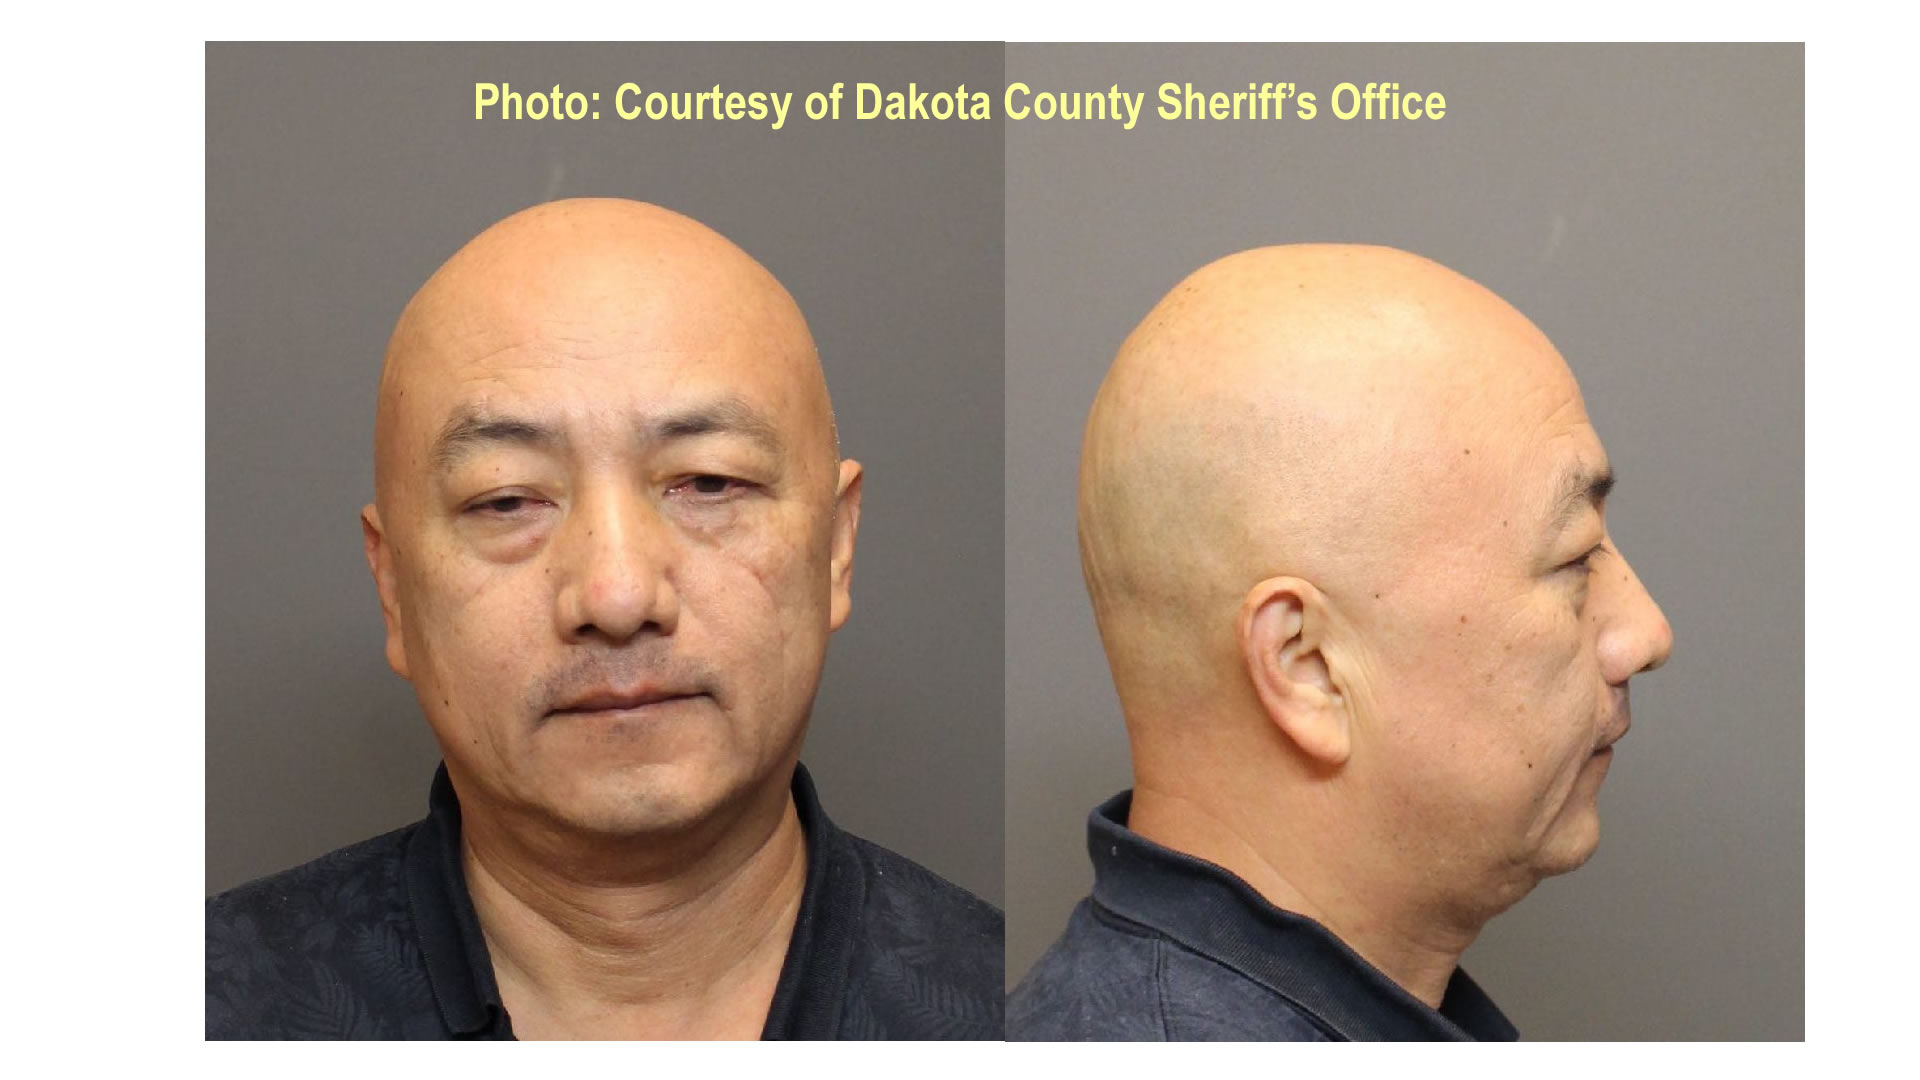 CHA VANG ARRESTED FOR FALSE CLAIMS TO PUBLIC OFFICER/THEFT OF PUBLIC FUNDS.